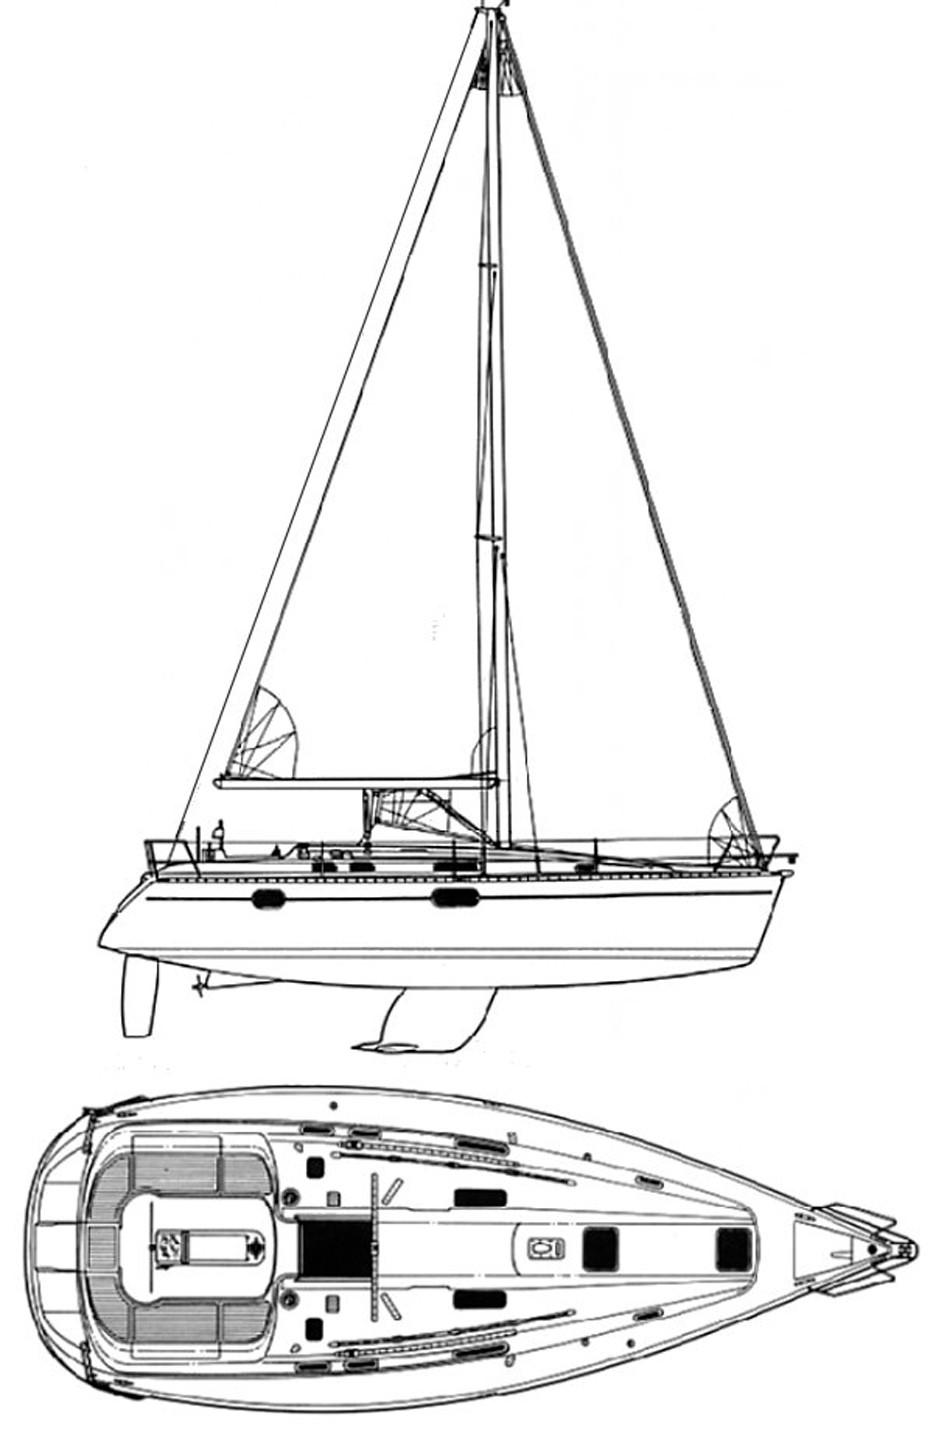 Sail and Deck Plan